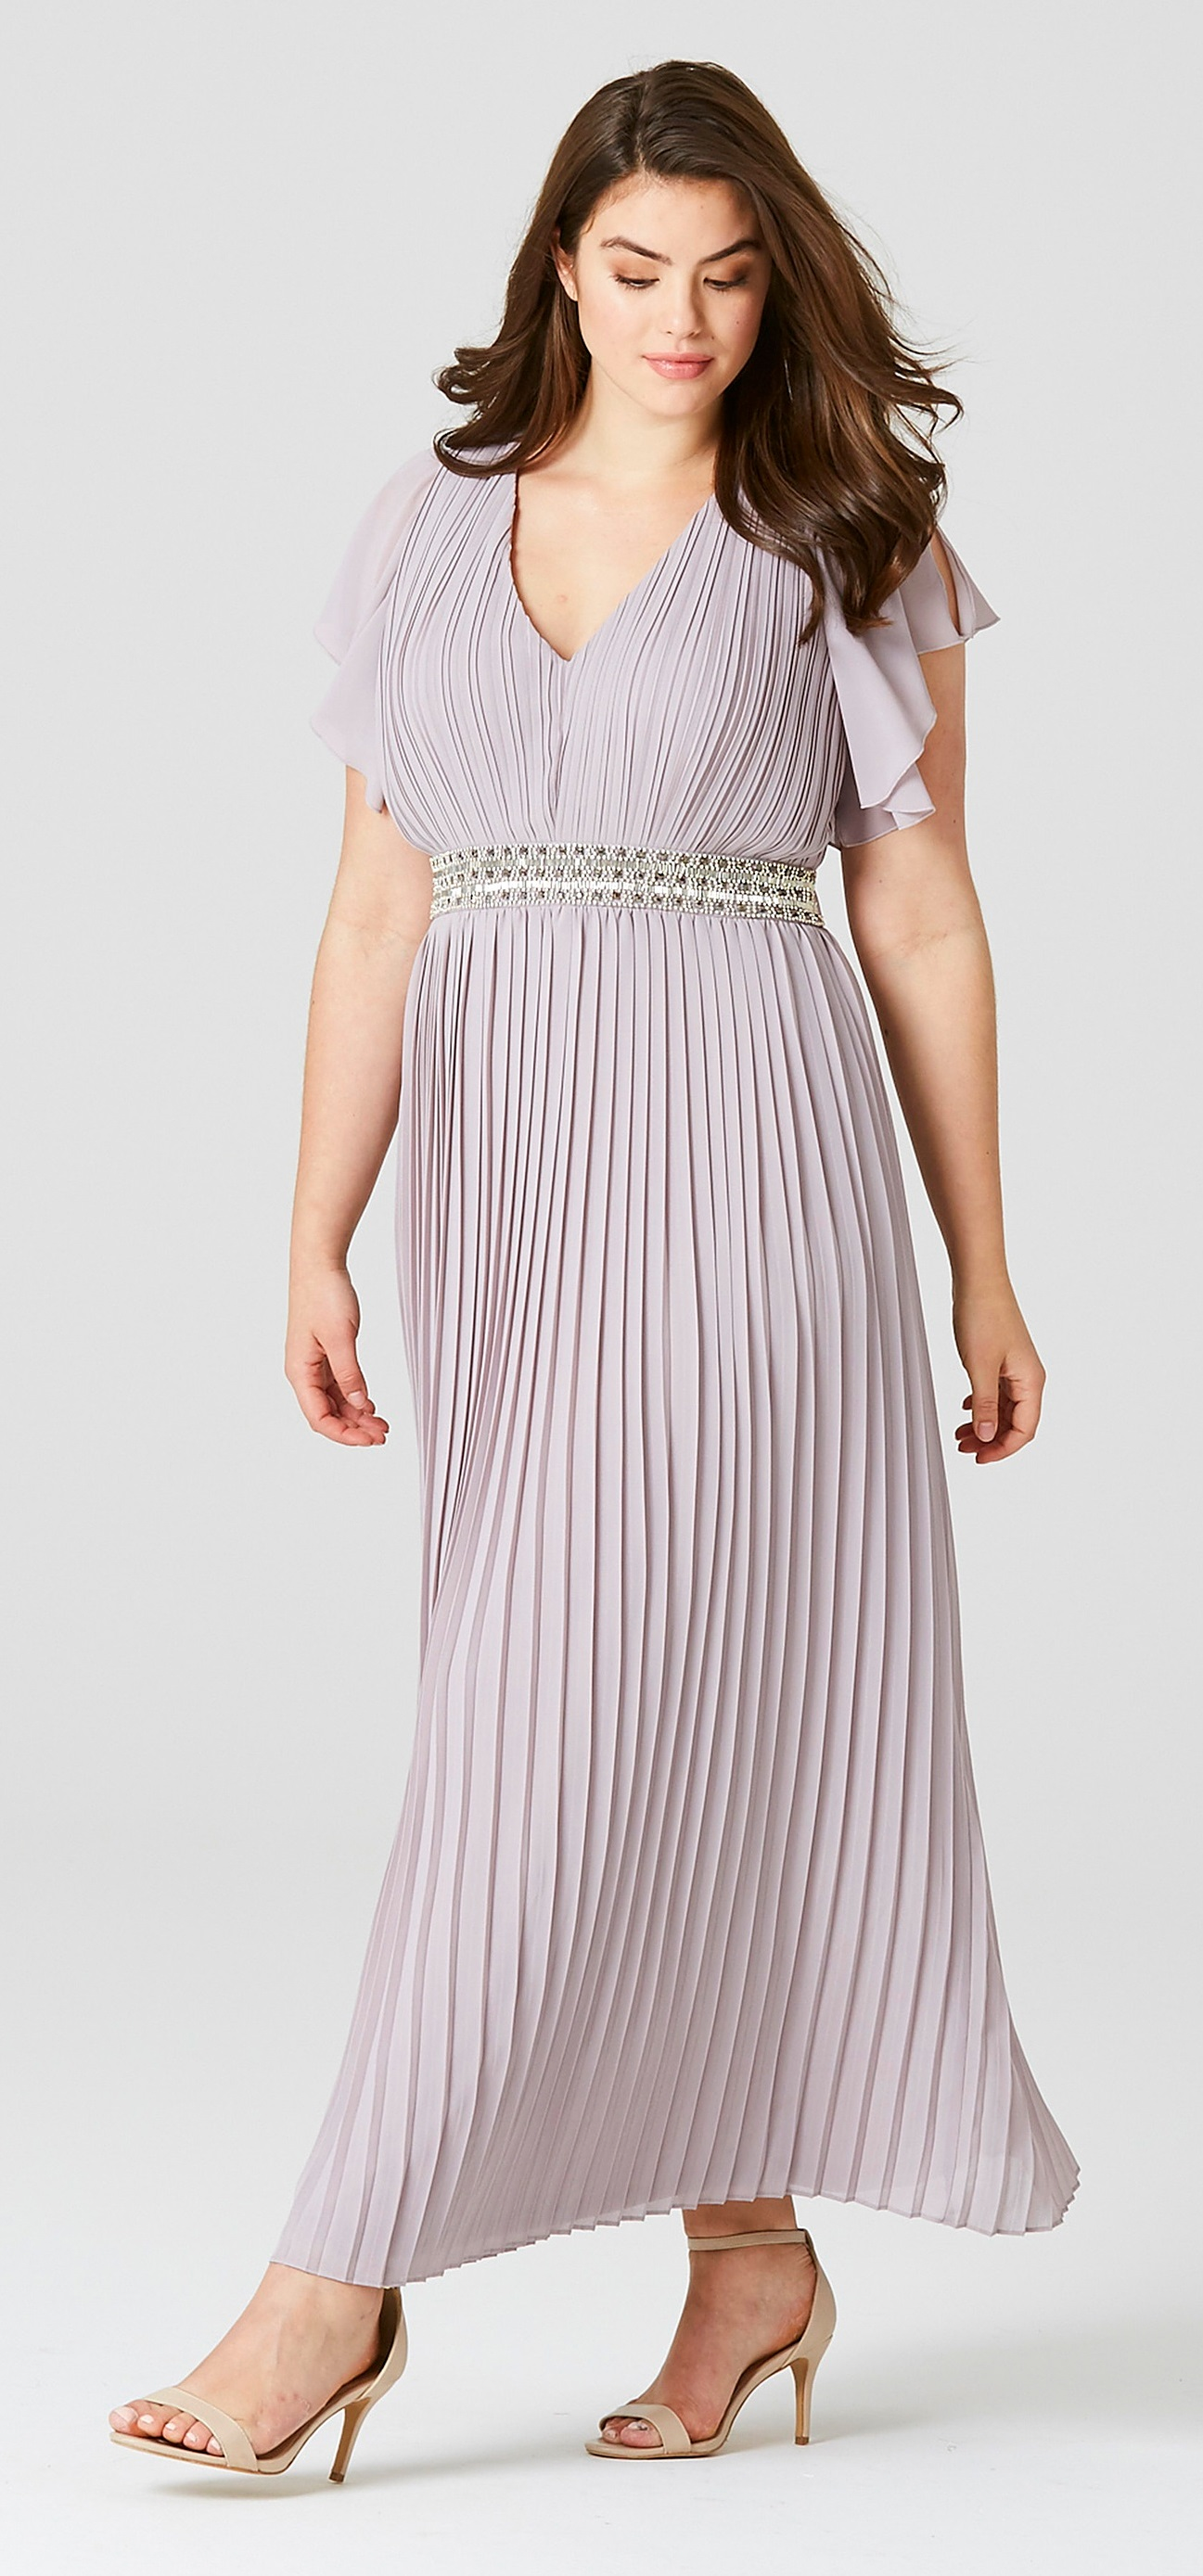 cocktail dress for wedding guest plus size, OFF 20,Buy